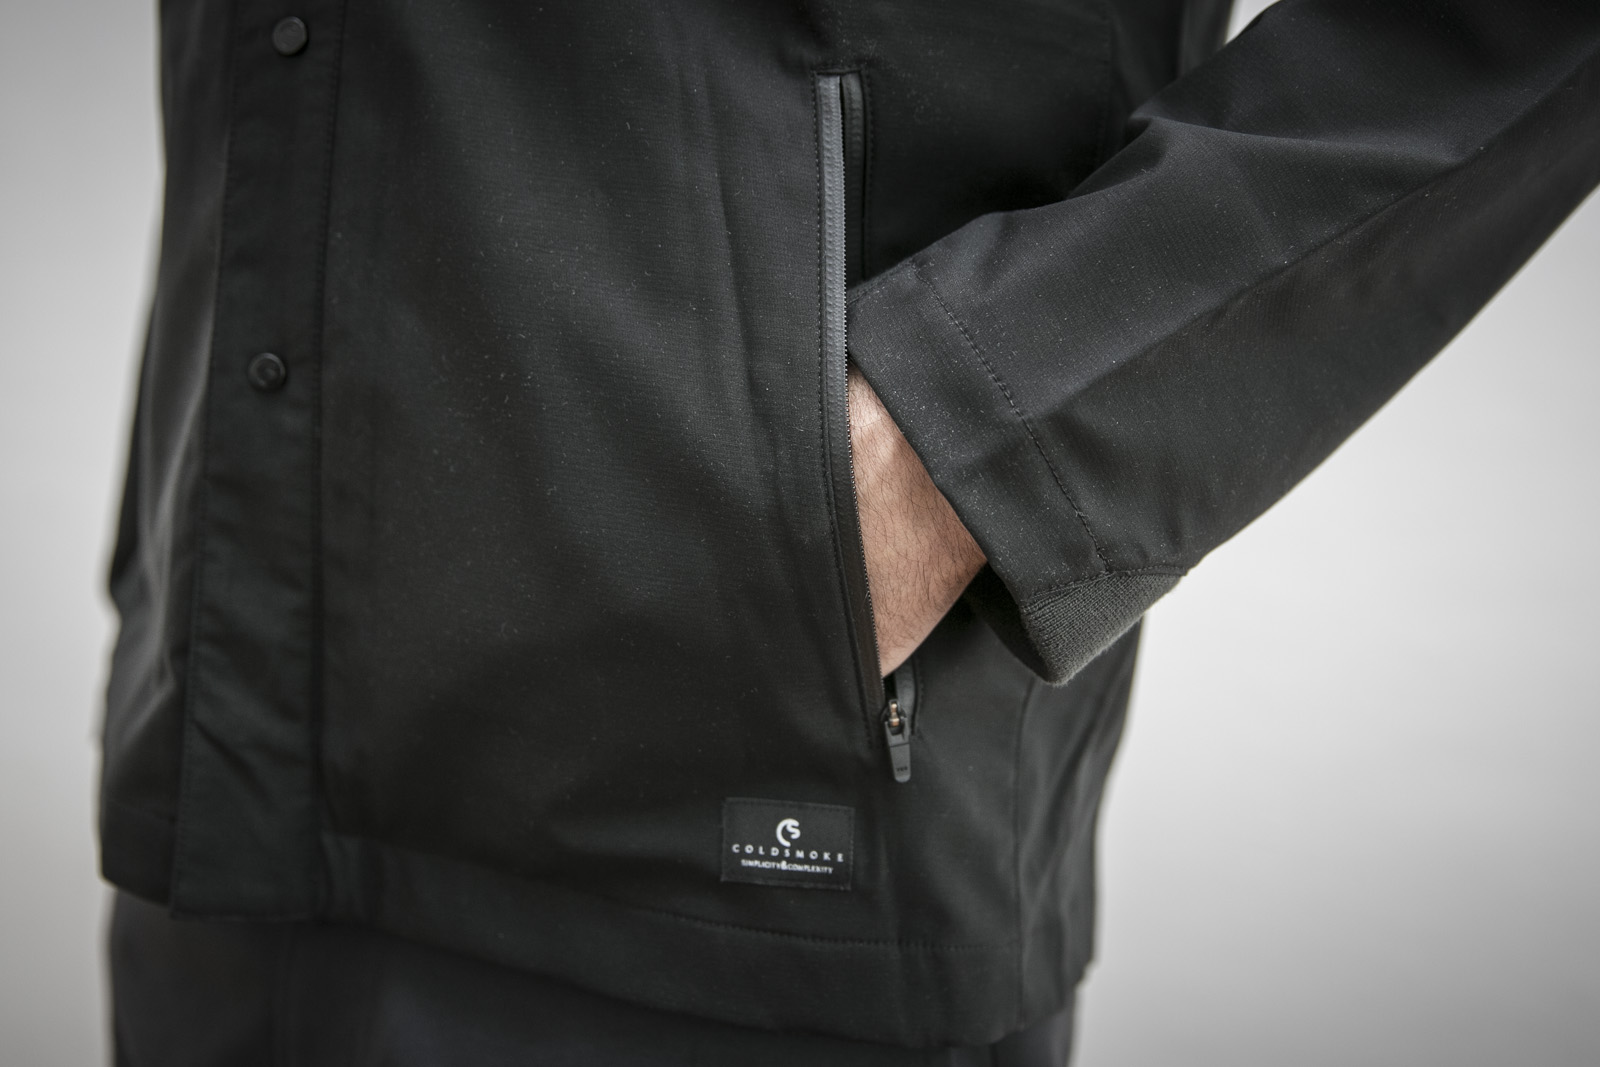 coldsmoke-kunnak-shirt-jacket-16